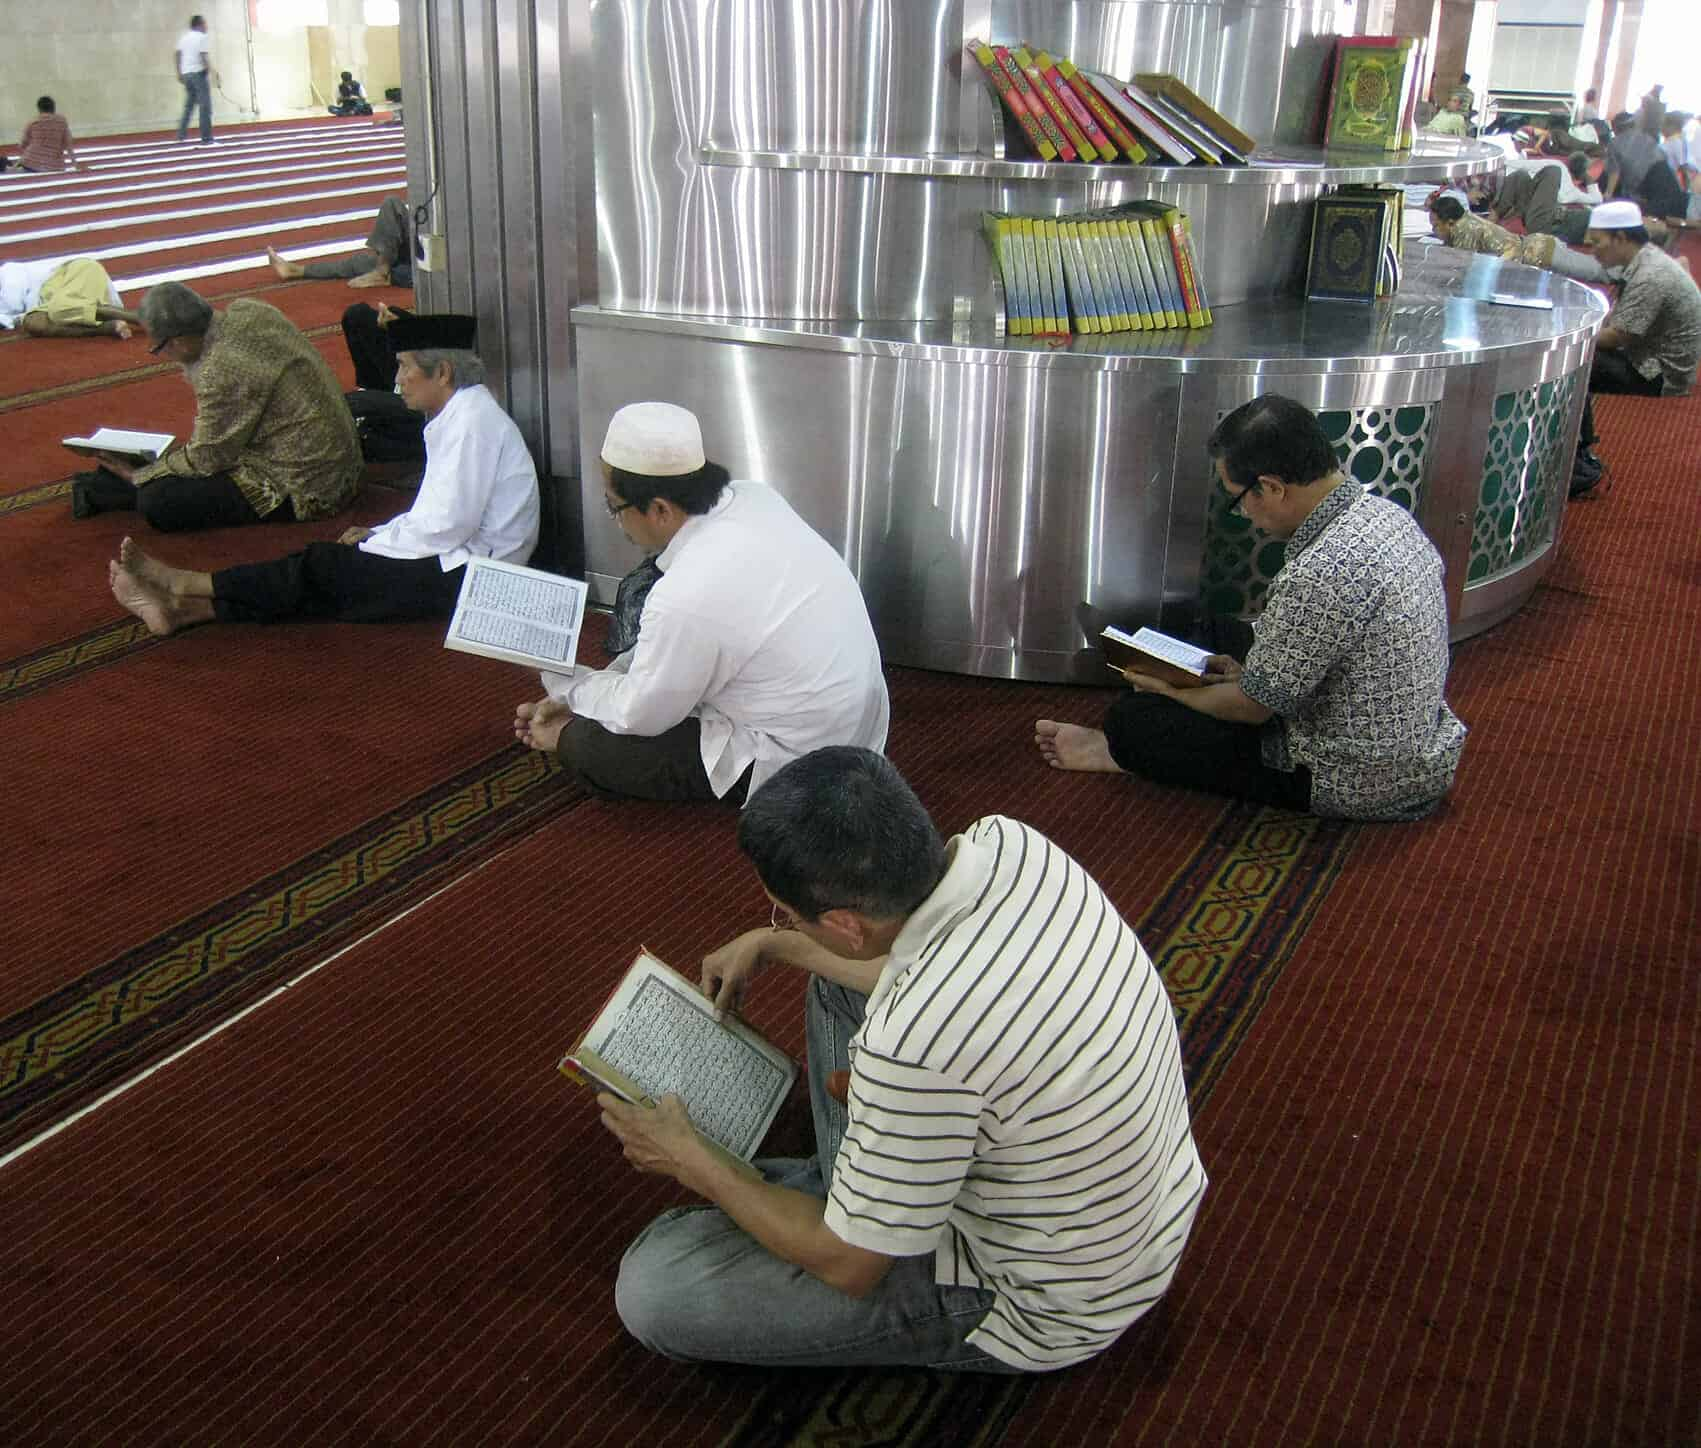 reciting Holy quran